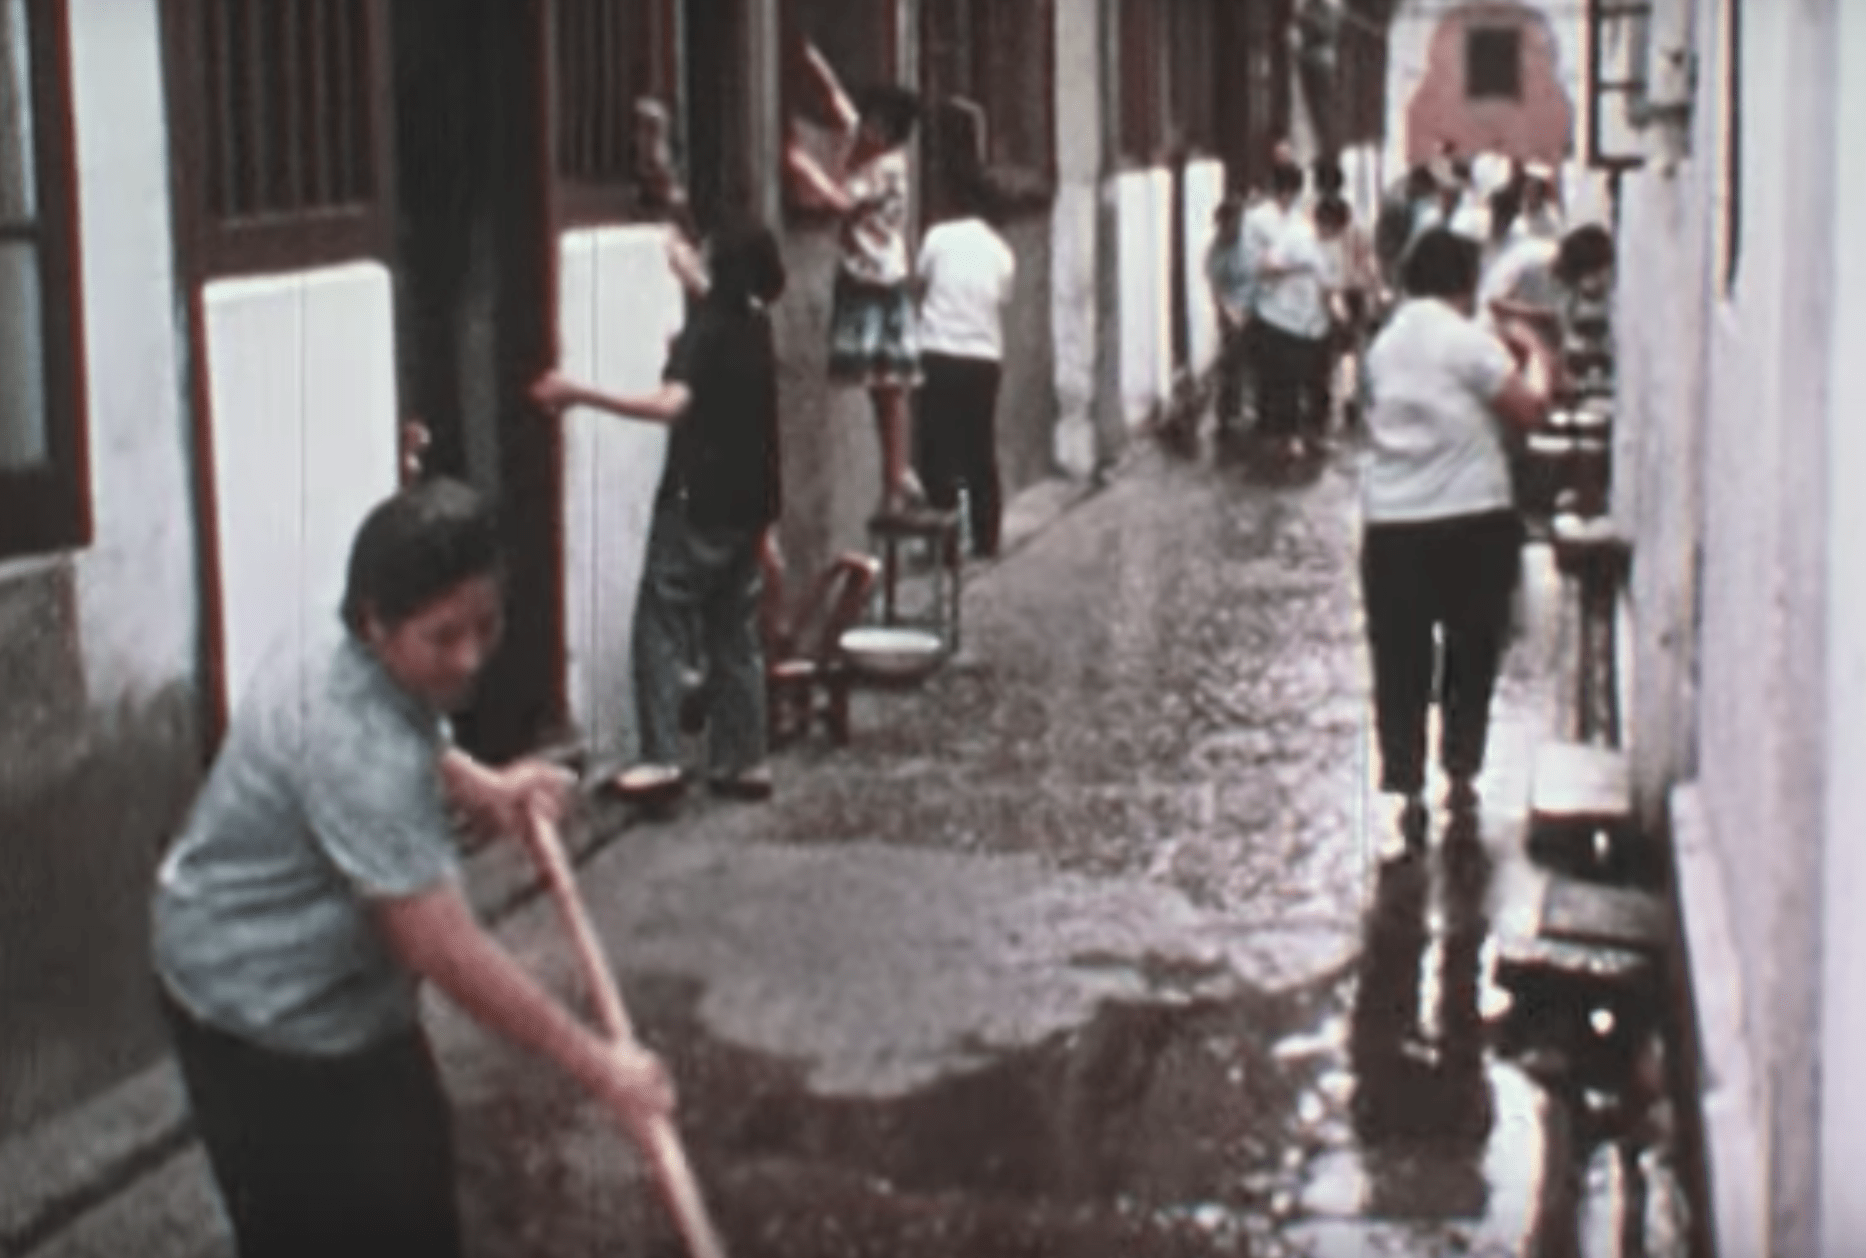 """The Old City would become precious to me, with its green lake, teahouses, and narrow """"blood alleys"""" that were suicidal to walk during the 1930s. (Image: YouTube/Screenshot)"""